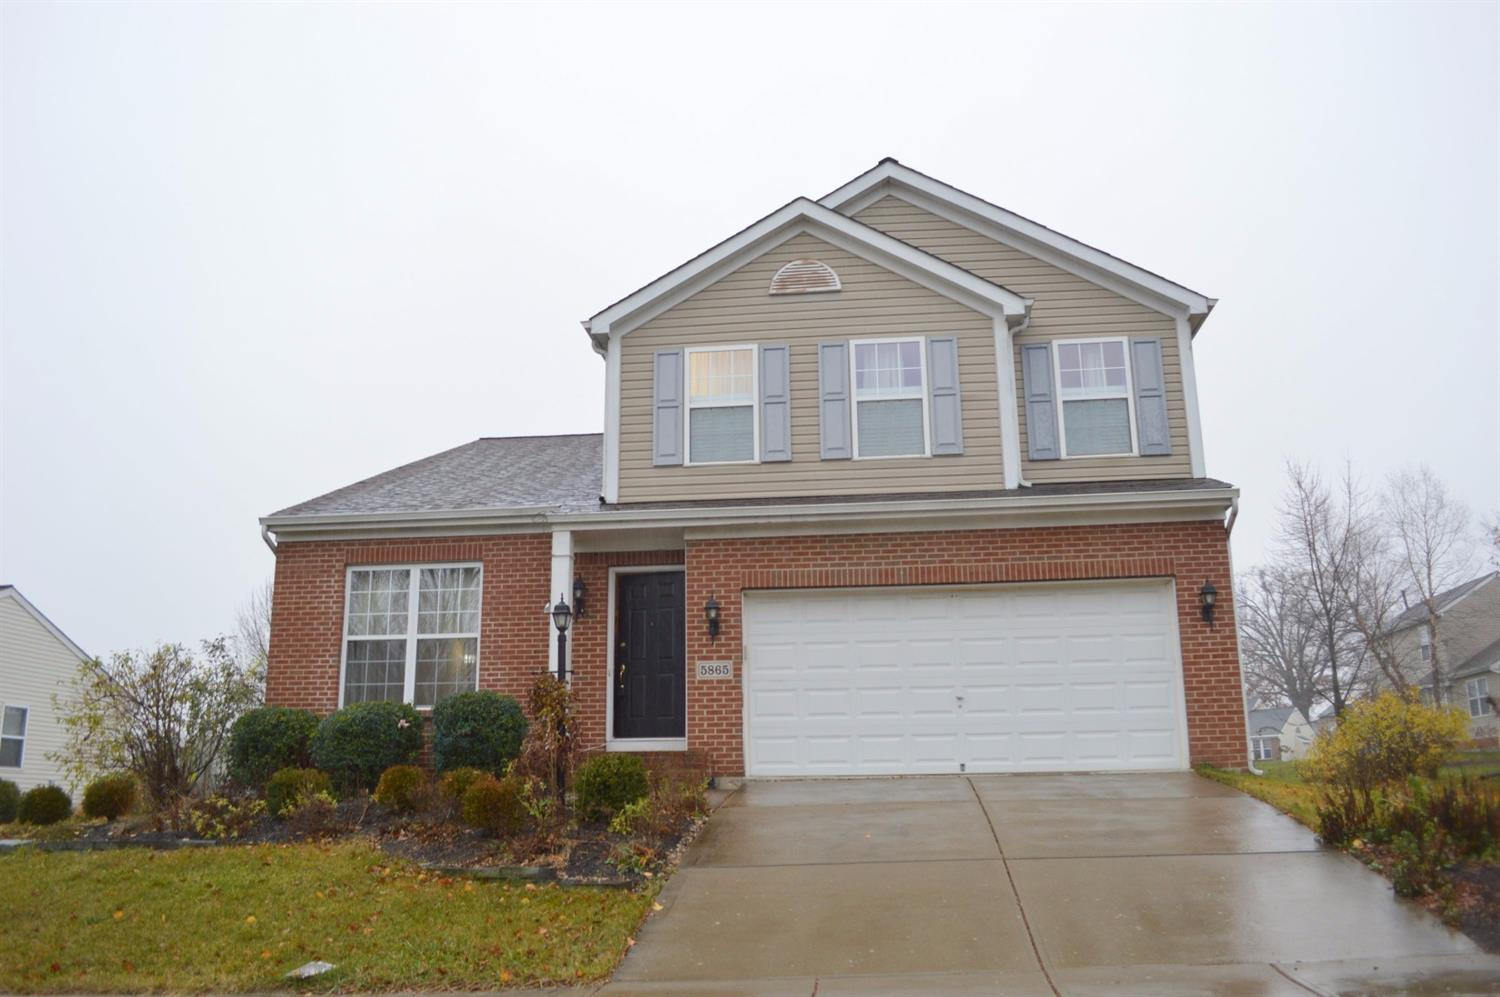 5865 Stillwater Dr Deerfield Twp., OH